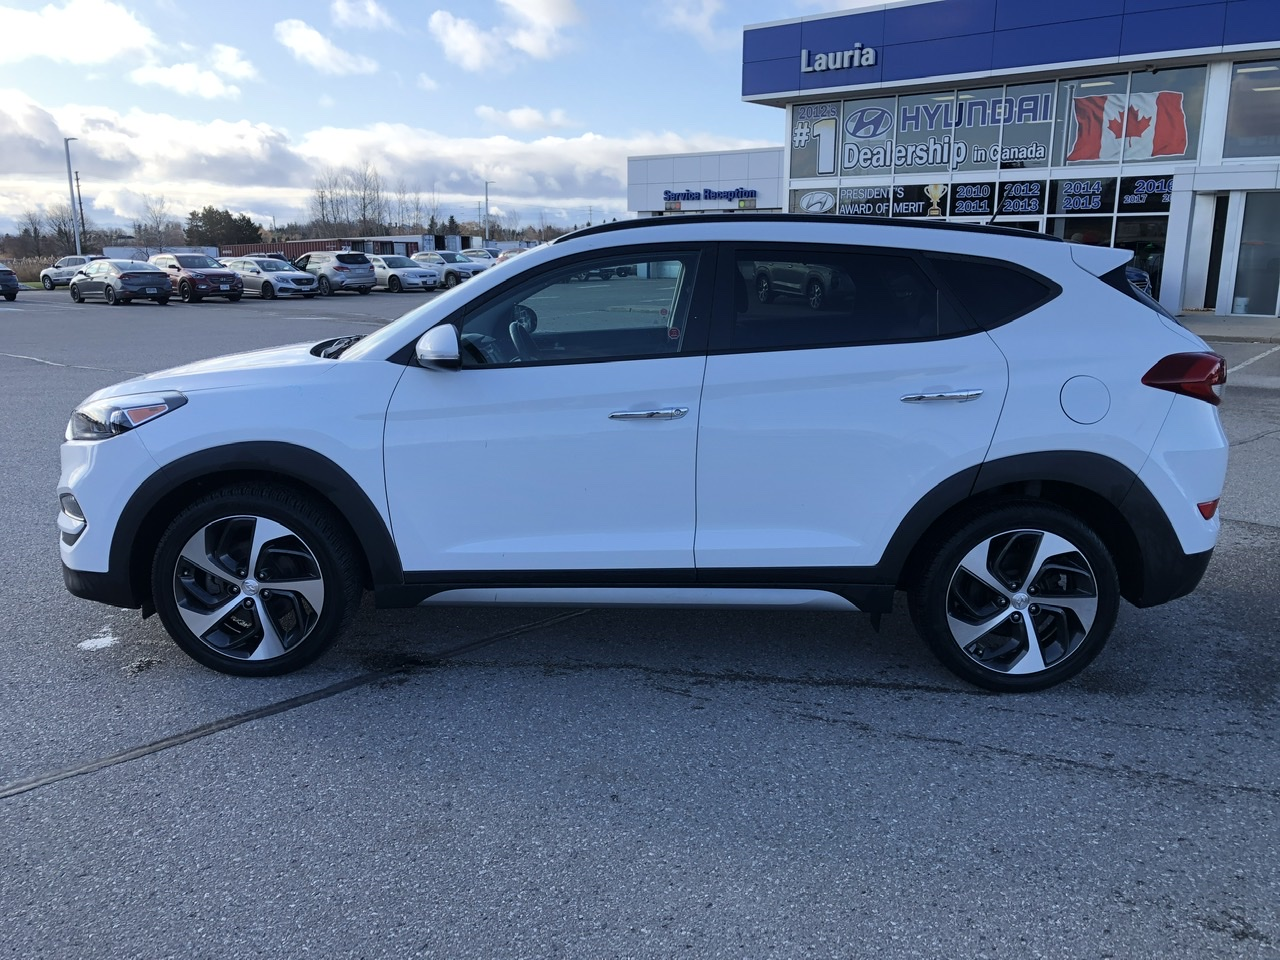 Certified Pre-Owned 2017 Hyundai Tucson SE - Leather / Panoramic sunroof